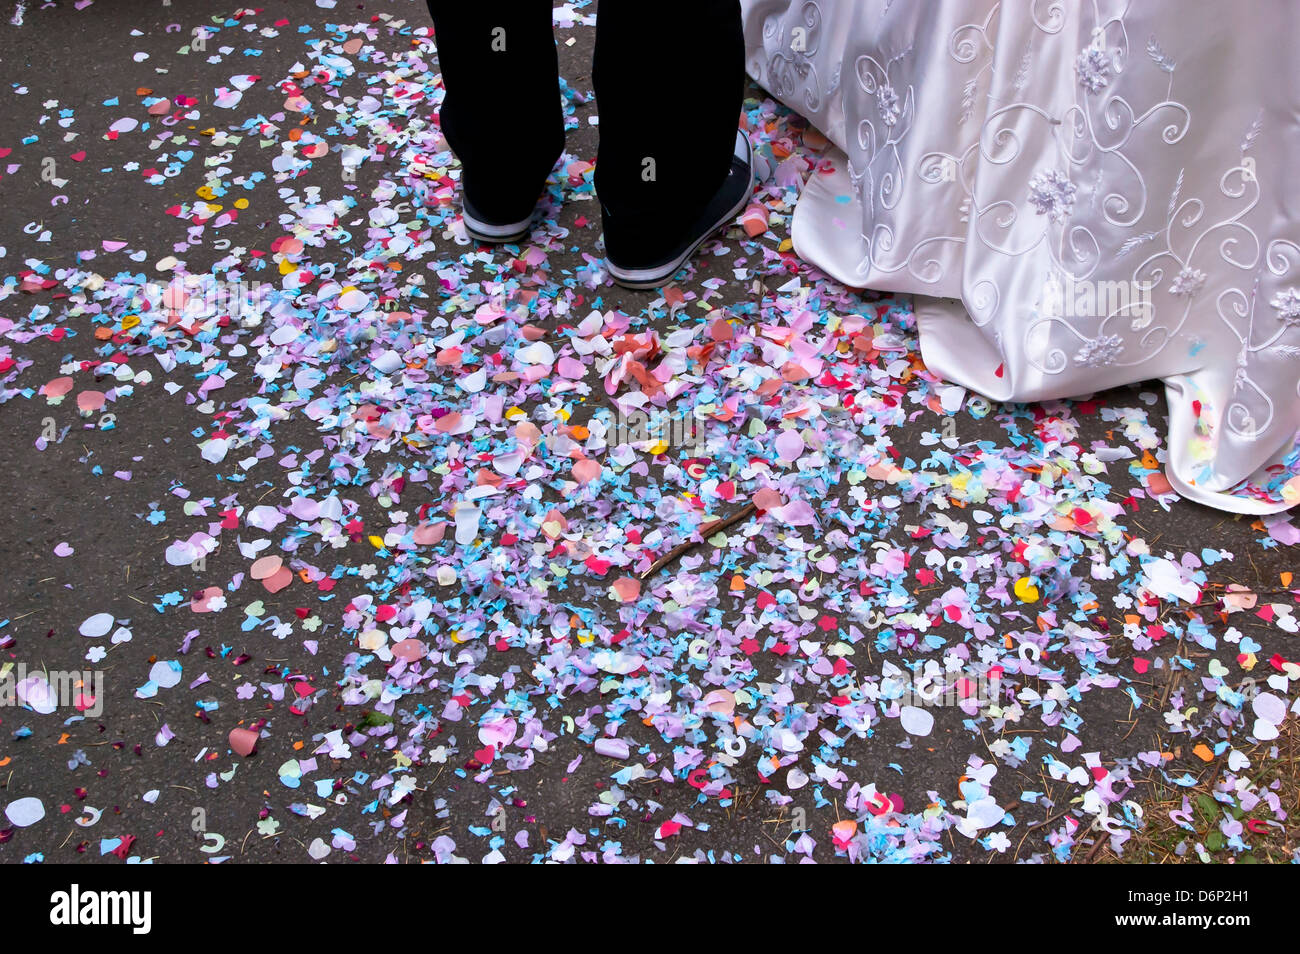 Confetti on the ground after a weeding - Stock Image